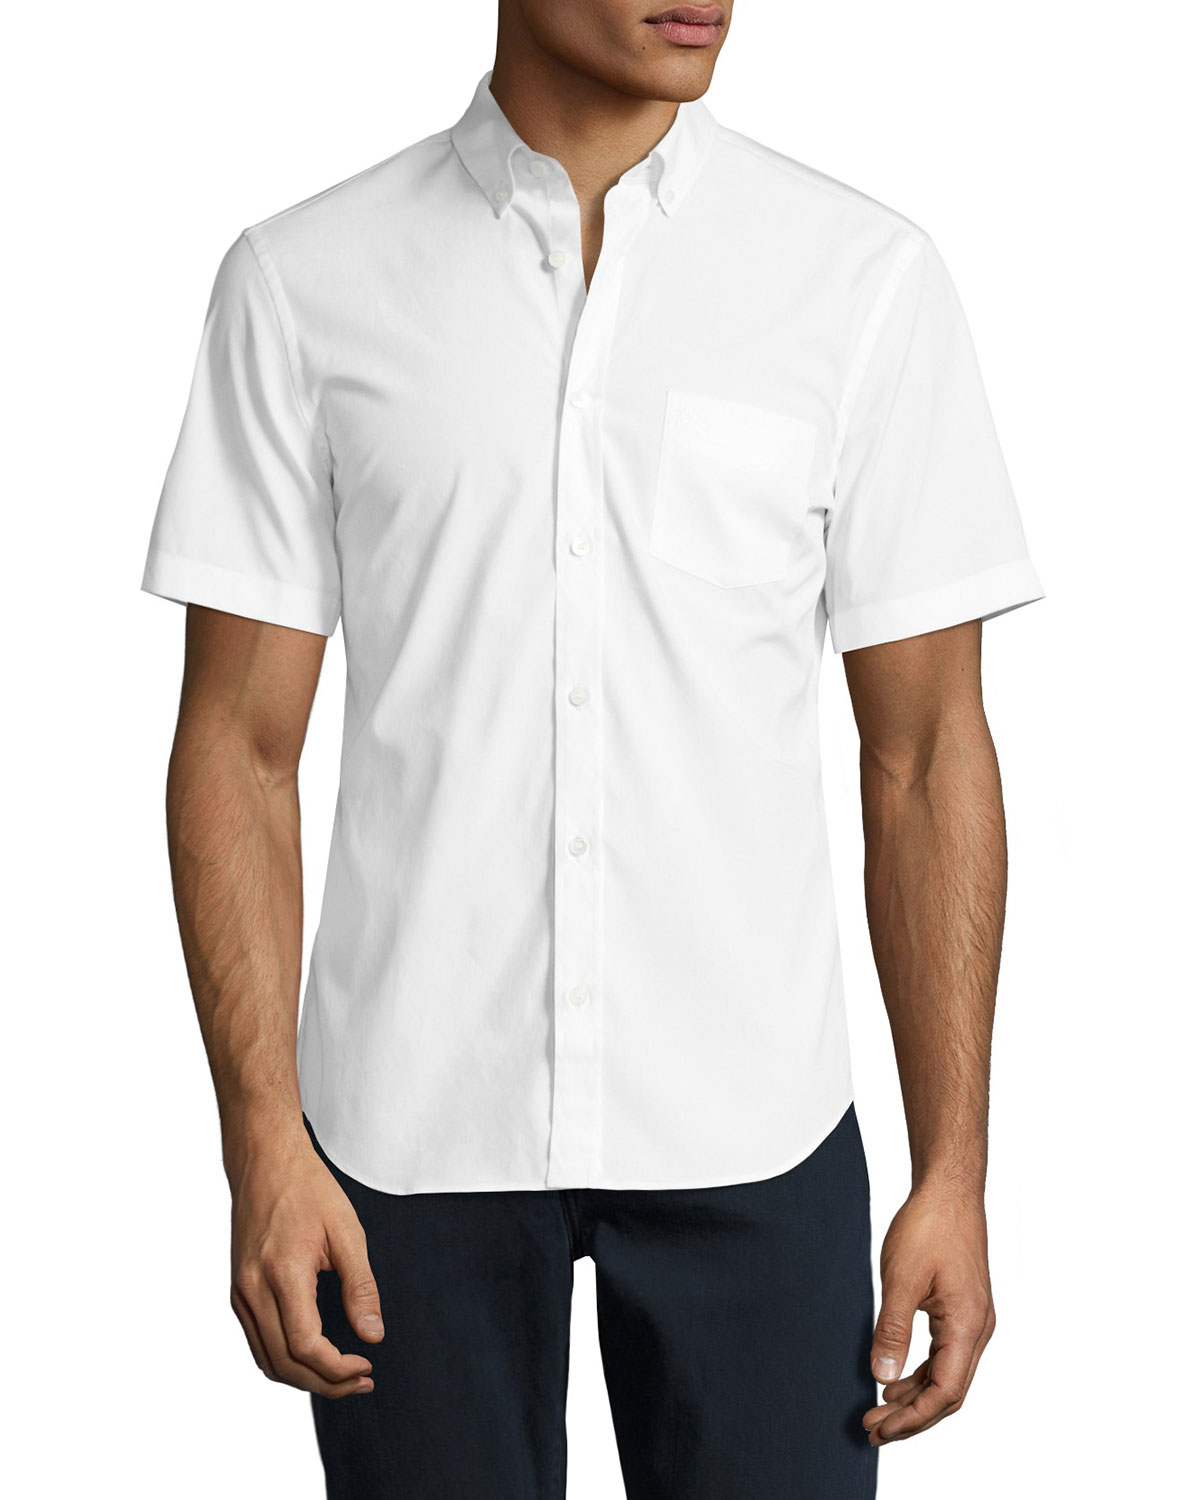 Cambridge Short-Sleeve Stretch-Cotton Shirt, White